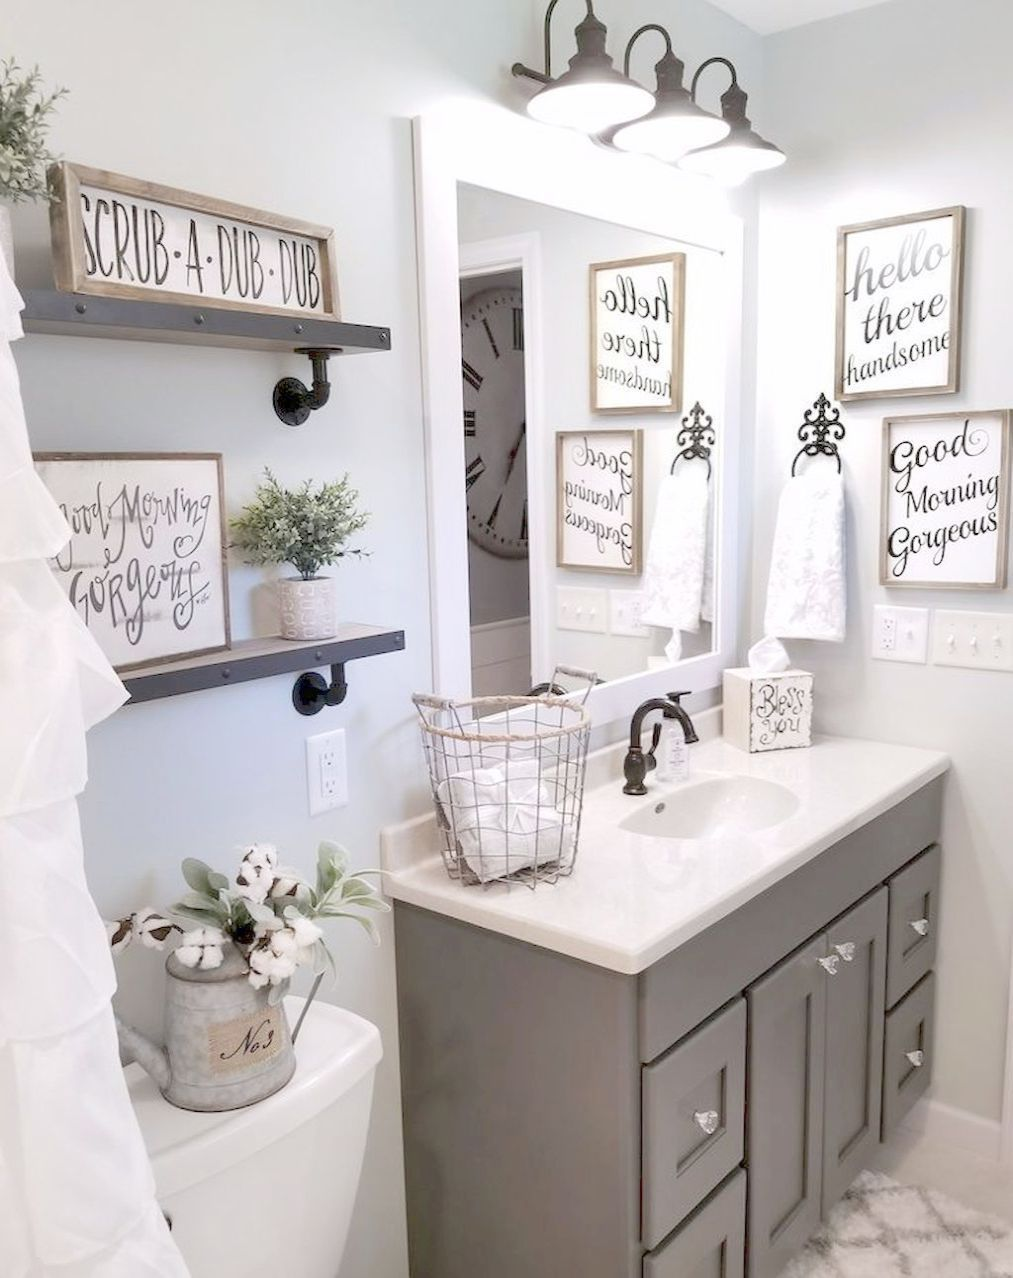 Small Bathroom With Large Shower Many Bathroom Ideas Red And Black In 2020 Small Bathroom Decor Bathroom Decor Farmhouse Bathroom Decor